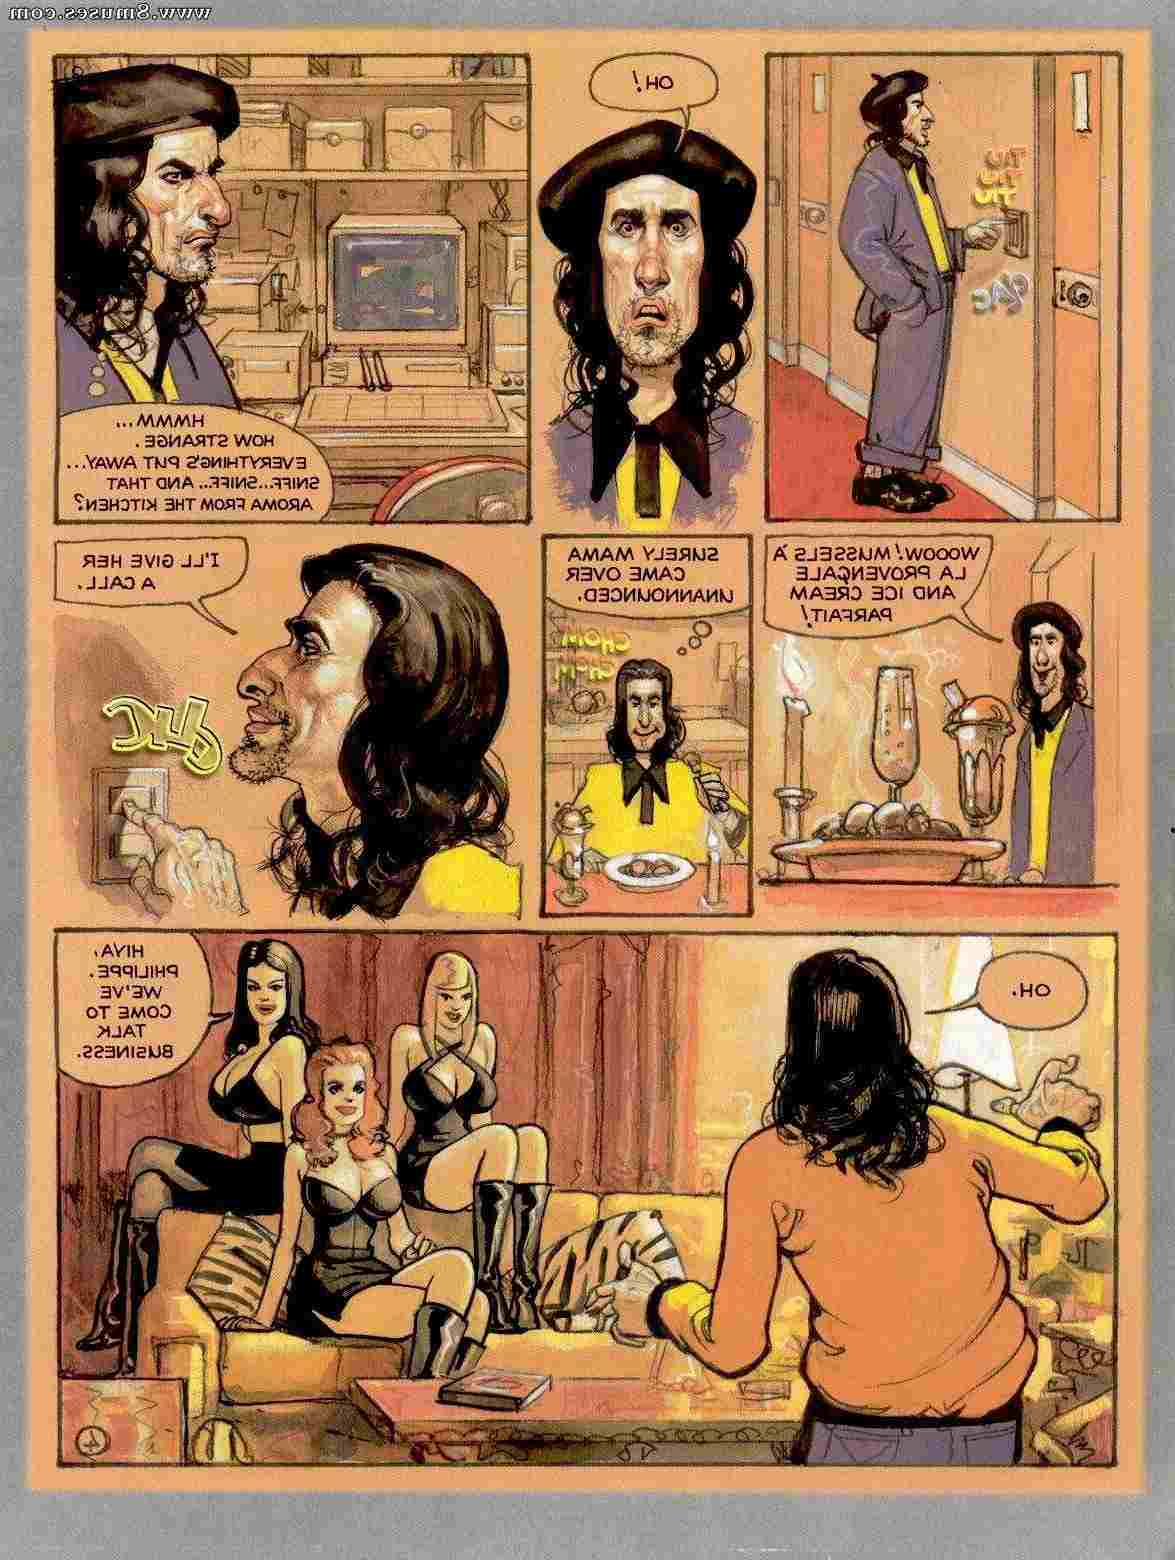 Ignacio-Noe-Comics/All-the-Right-Career-Moves All_the_Right_Career_Moves__8muses_-_Sex_and_Porn_Comics_4.jpg